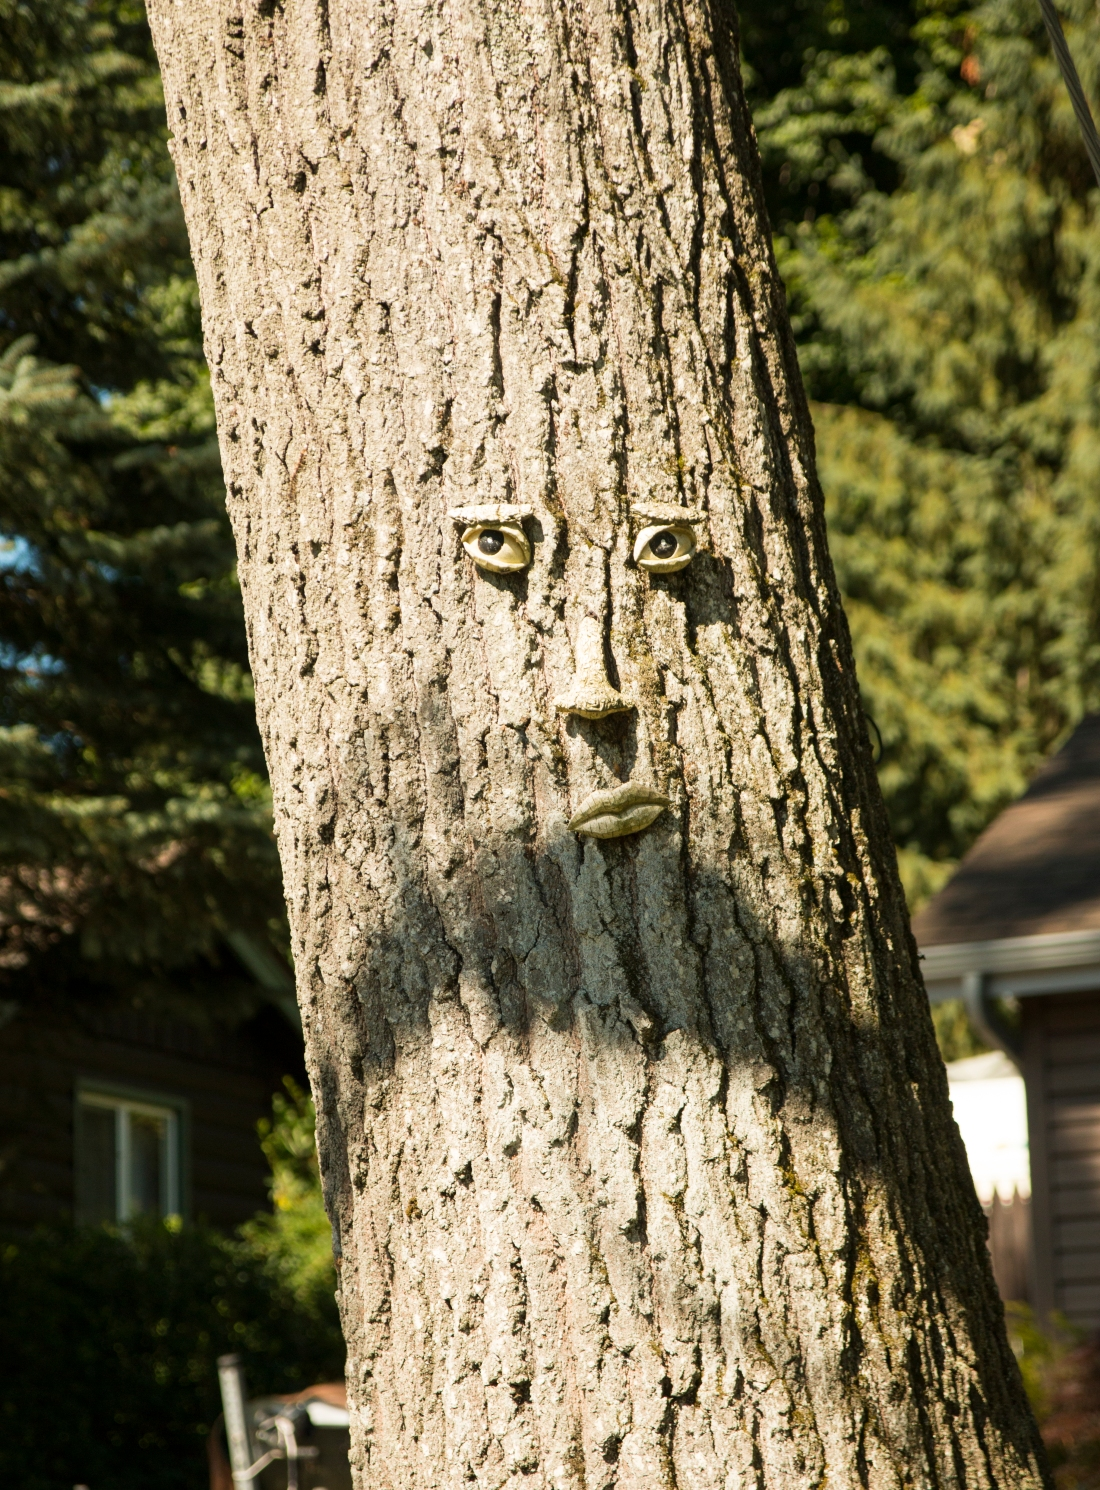 Mr. Tree.  Holland Michigan.  Shot with a Canon 70D.